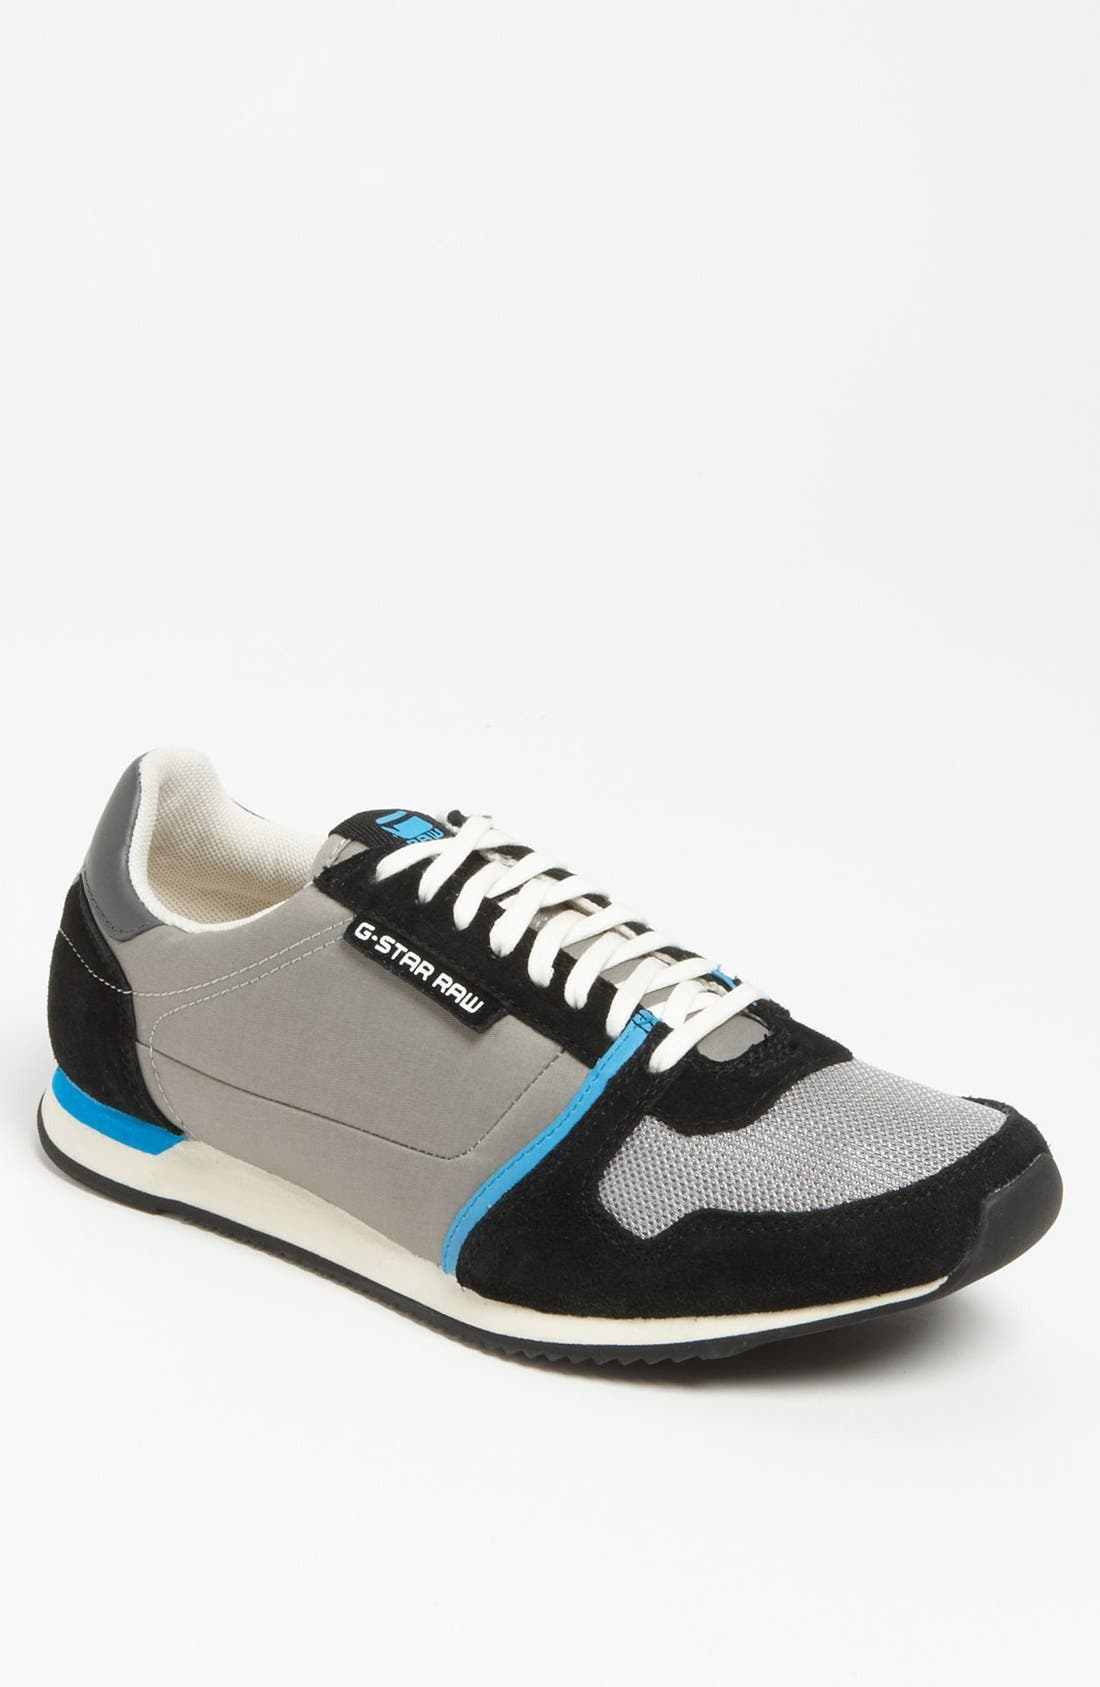 Main Image - G-Star Raw 'Track Futura' Sneaker (Men)